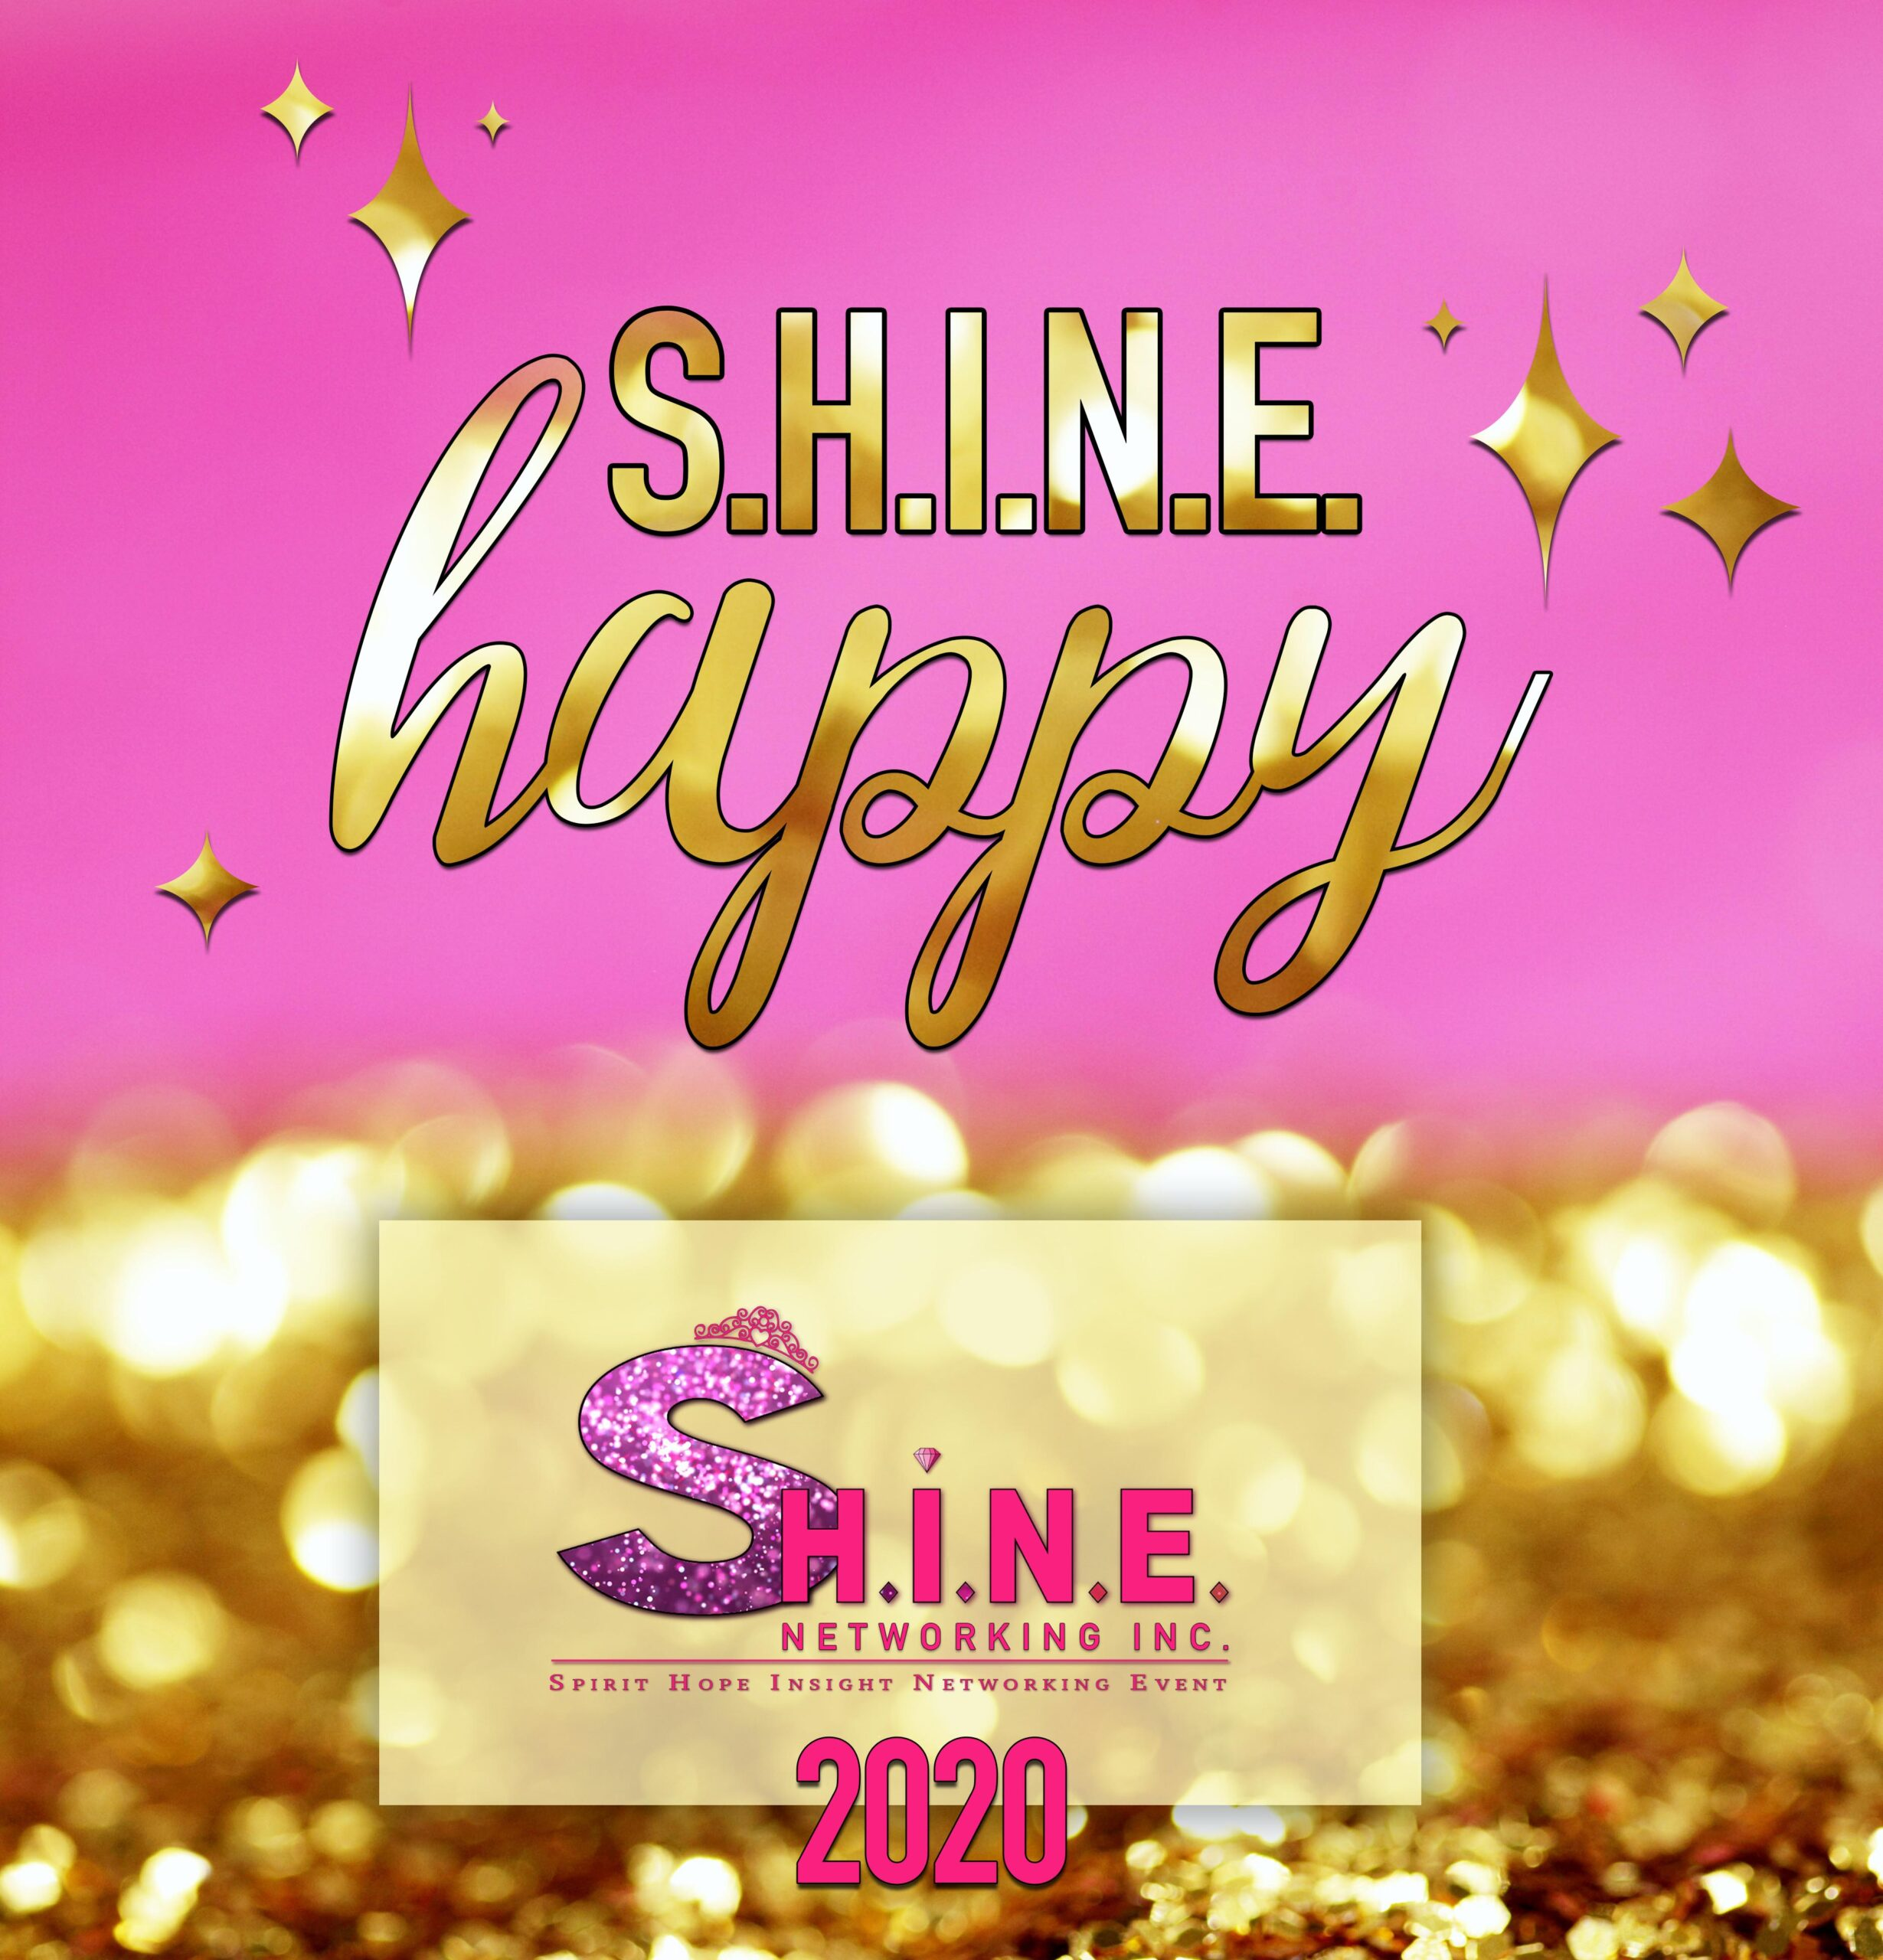 S.H.I.N.E. HAPPY 2020:THIS YEAR DO MORE OF WHAT MAKES YOU HAPPY! Tentative Date October 25, 2020